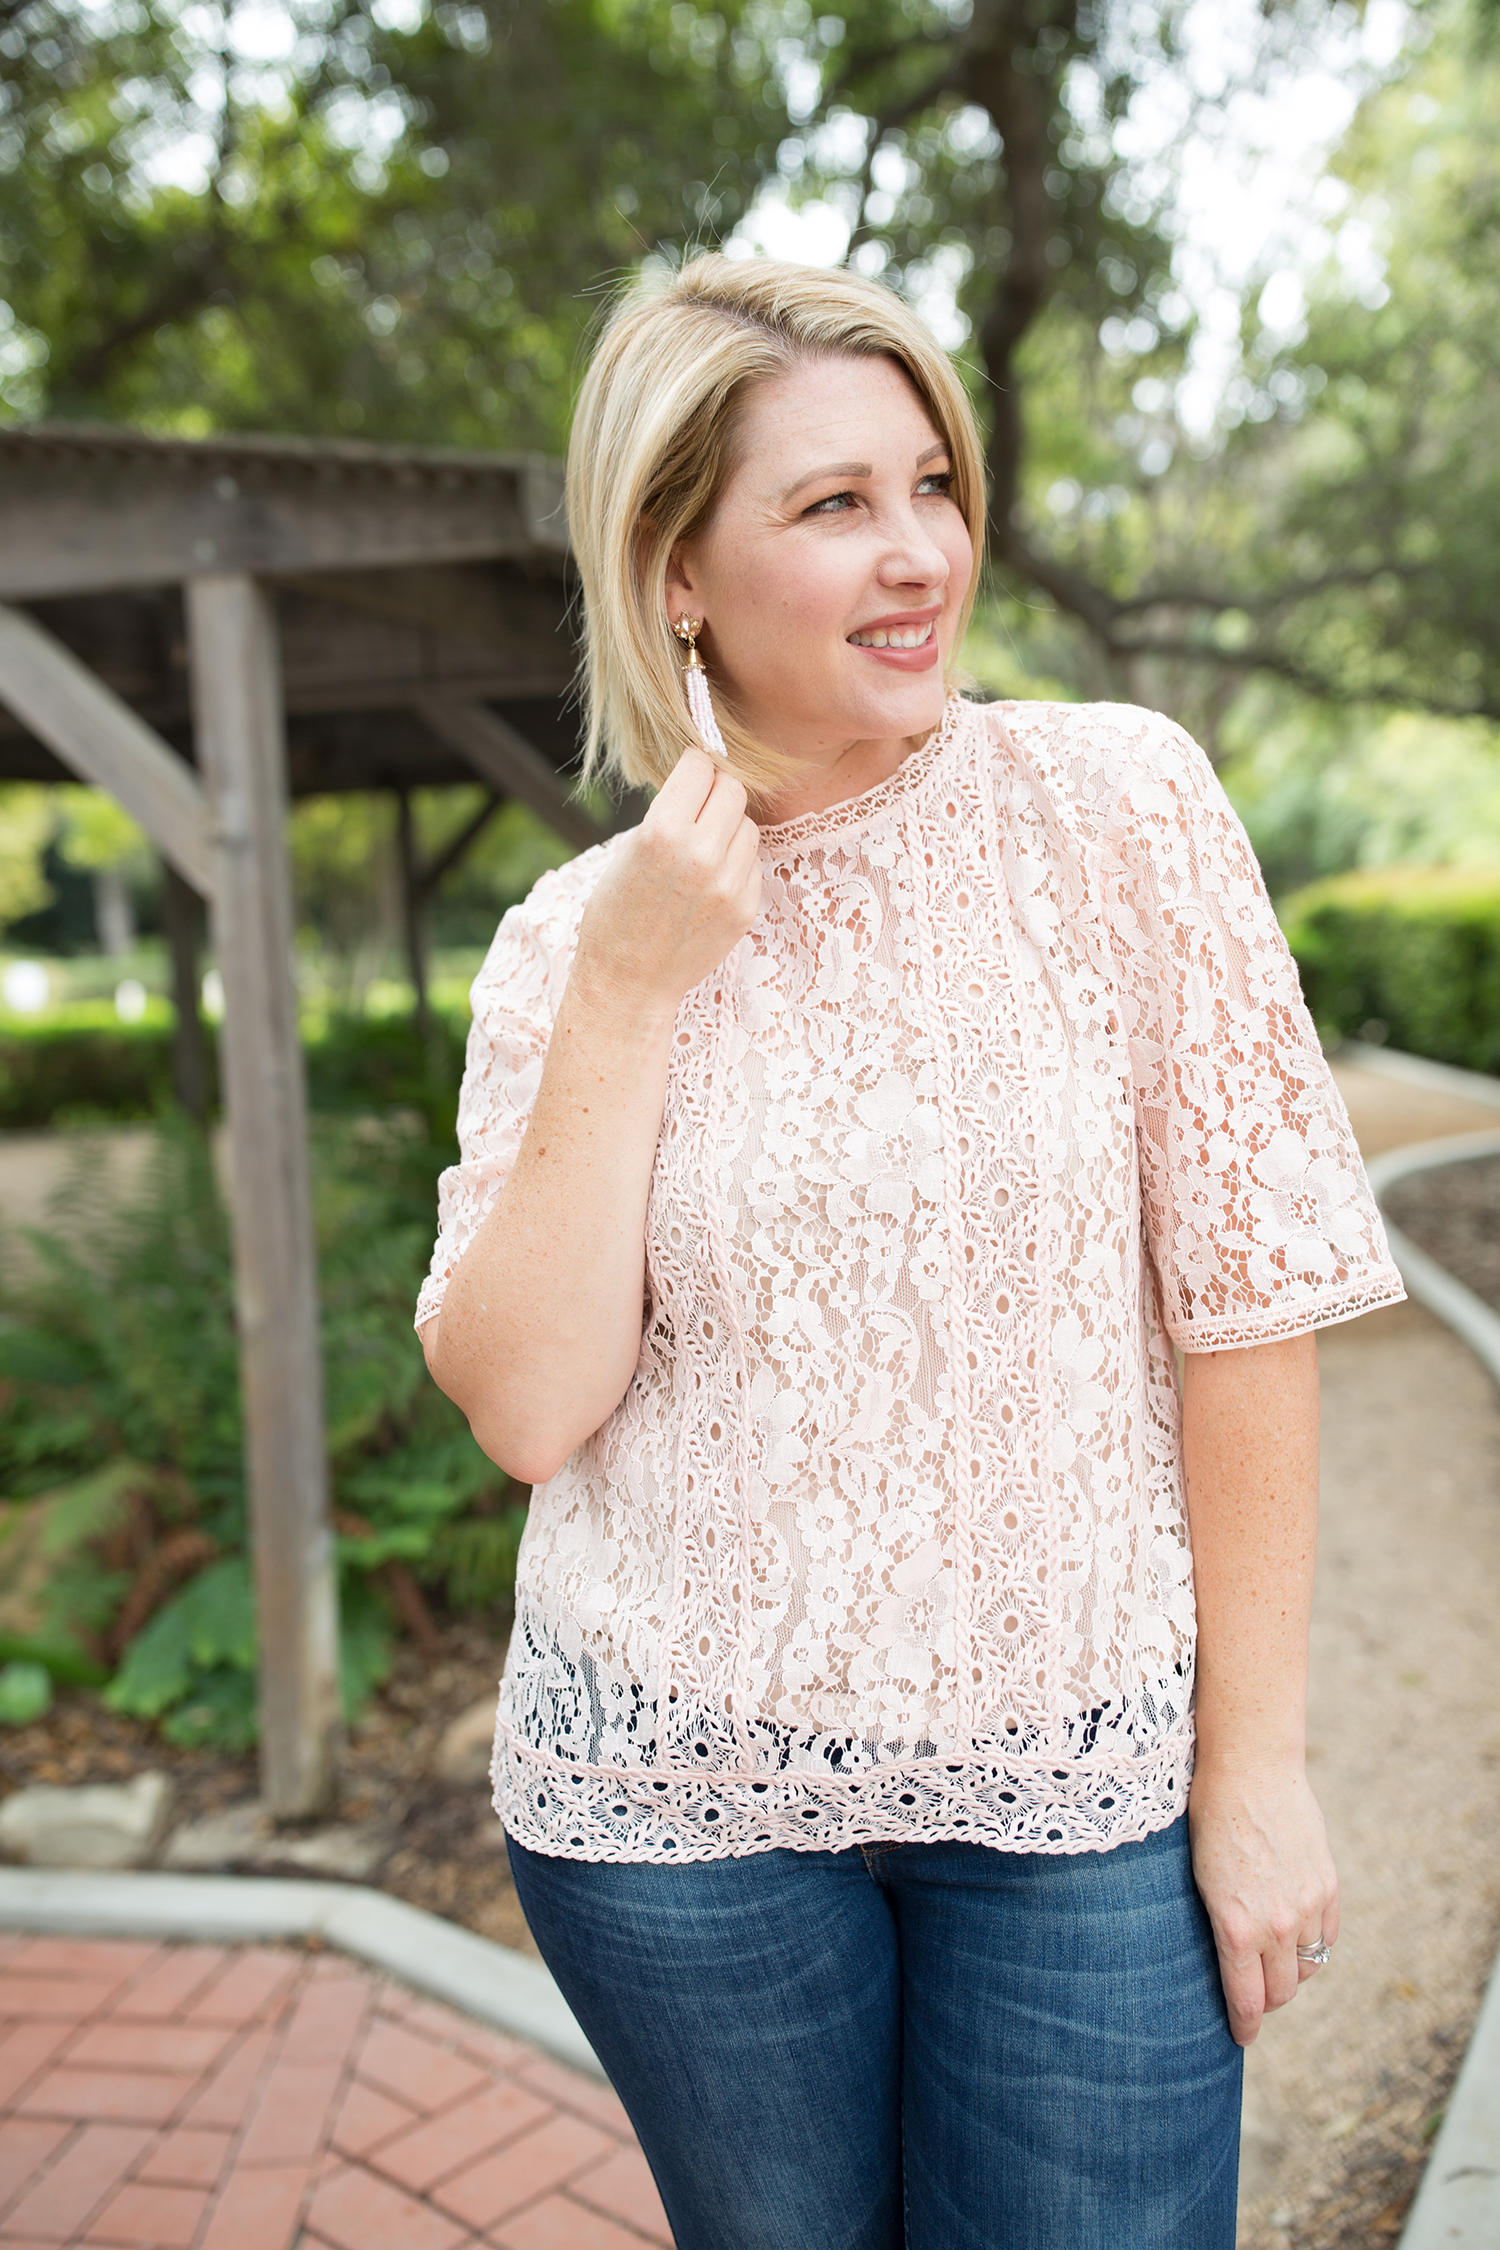 I love this pink lace top....it's perfect for fall outfit options!